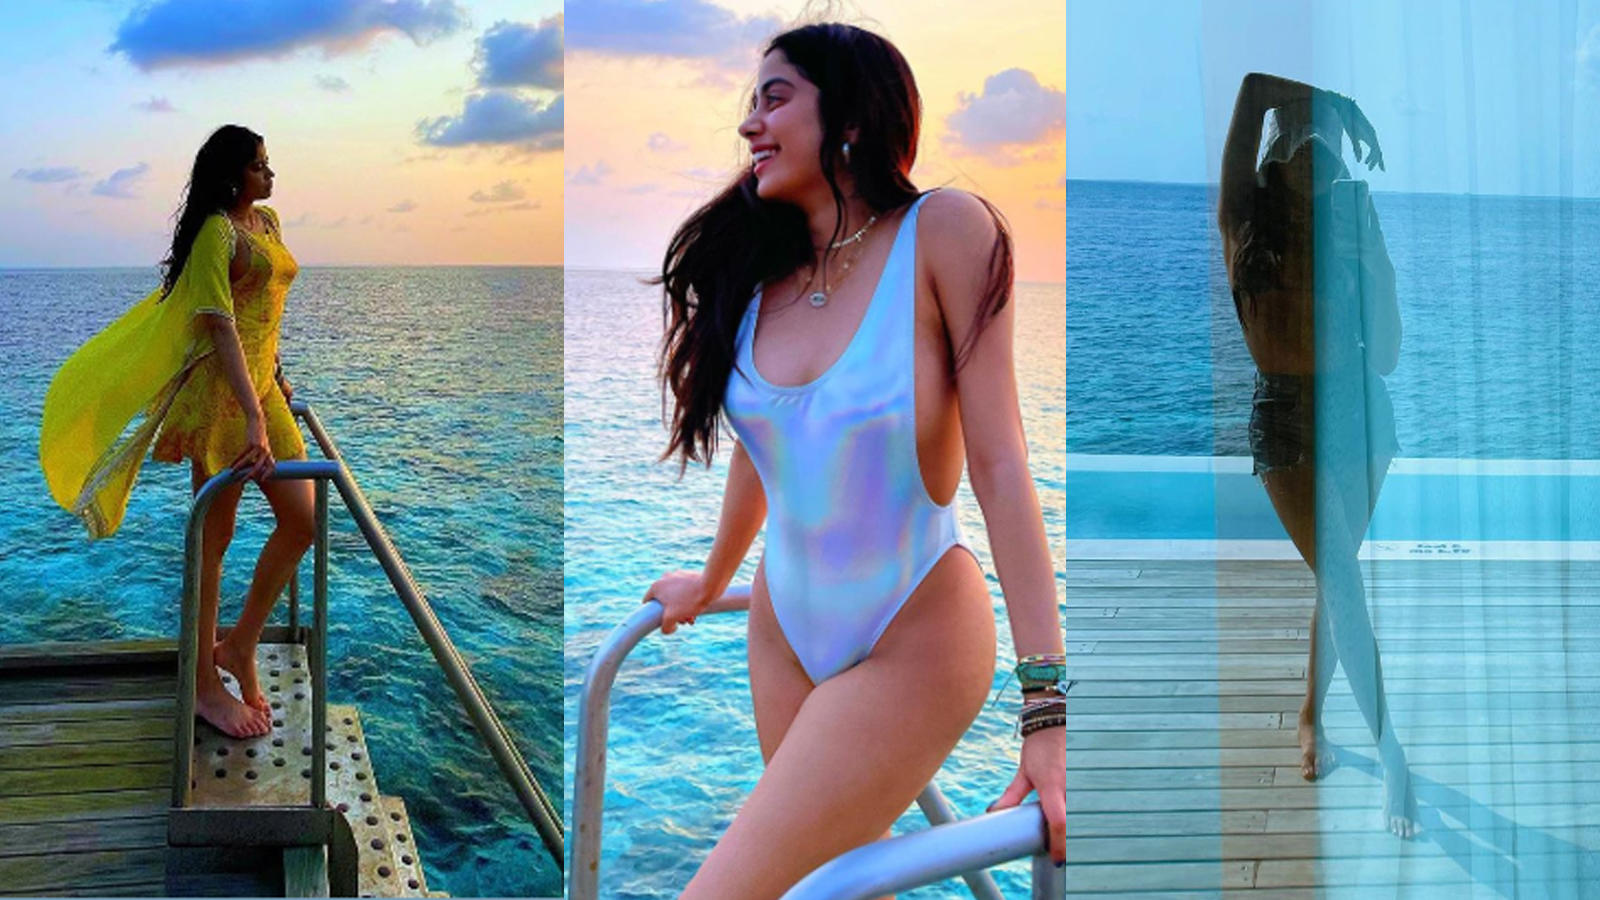 Janhvi Kapoor shares pictures from her exotic vacay, captions 'Last to get on the Maldives bandwagon but I fully get the hype' | Hindi Movie News - Bollywood - Times of India